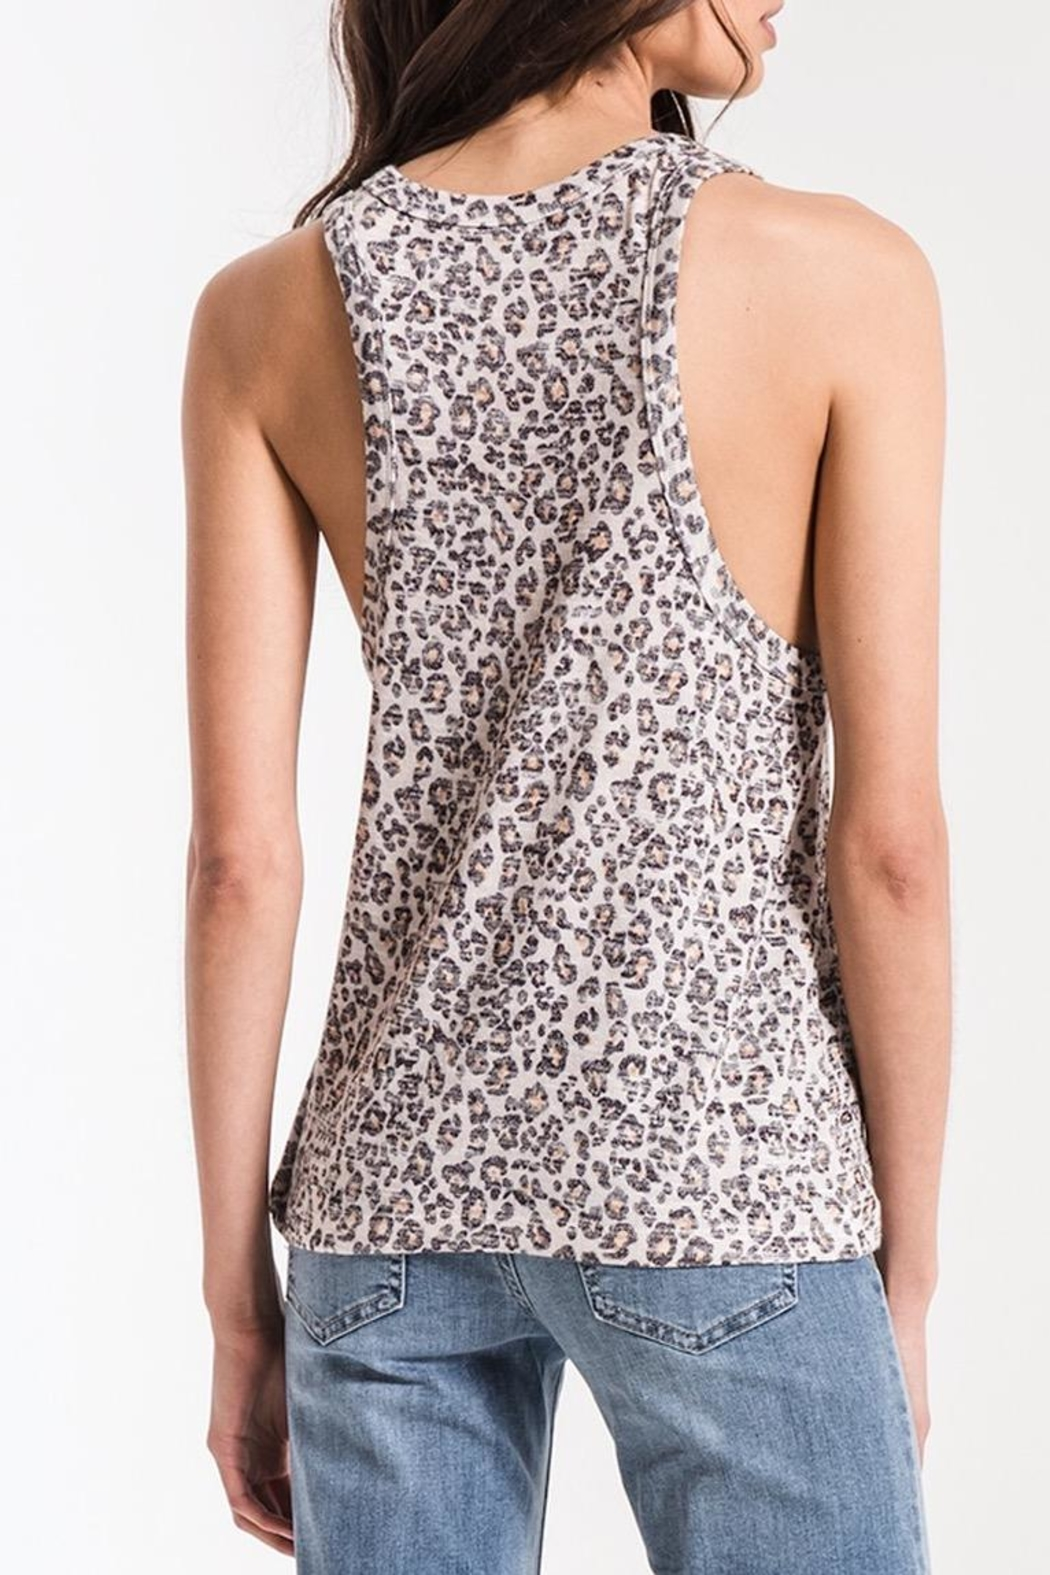 Zsupply Leopard Muscle Tank - Front Full Image